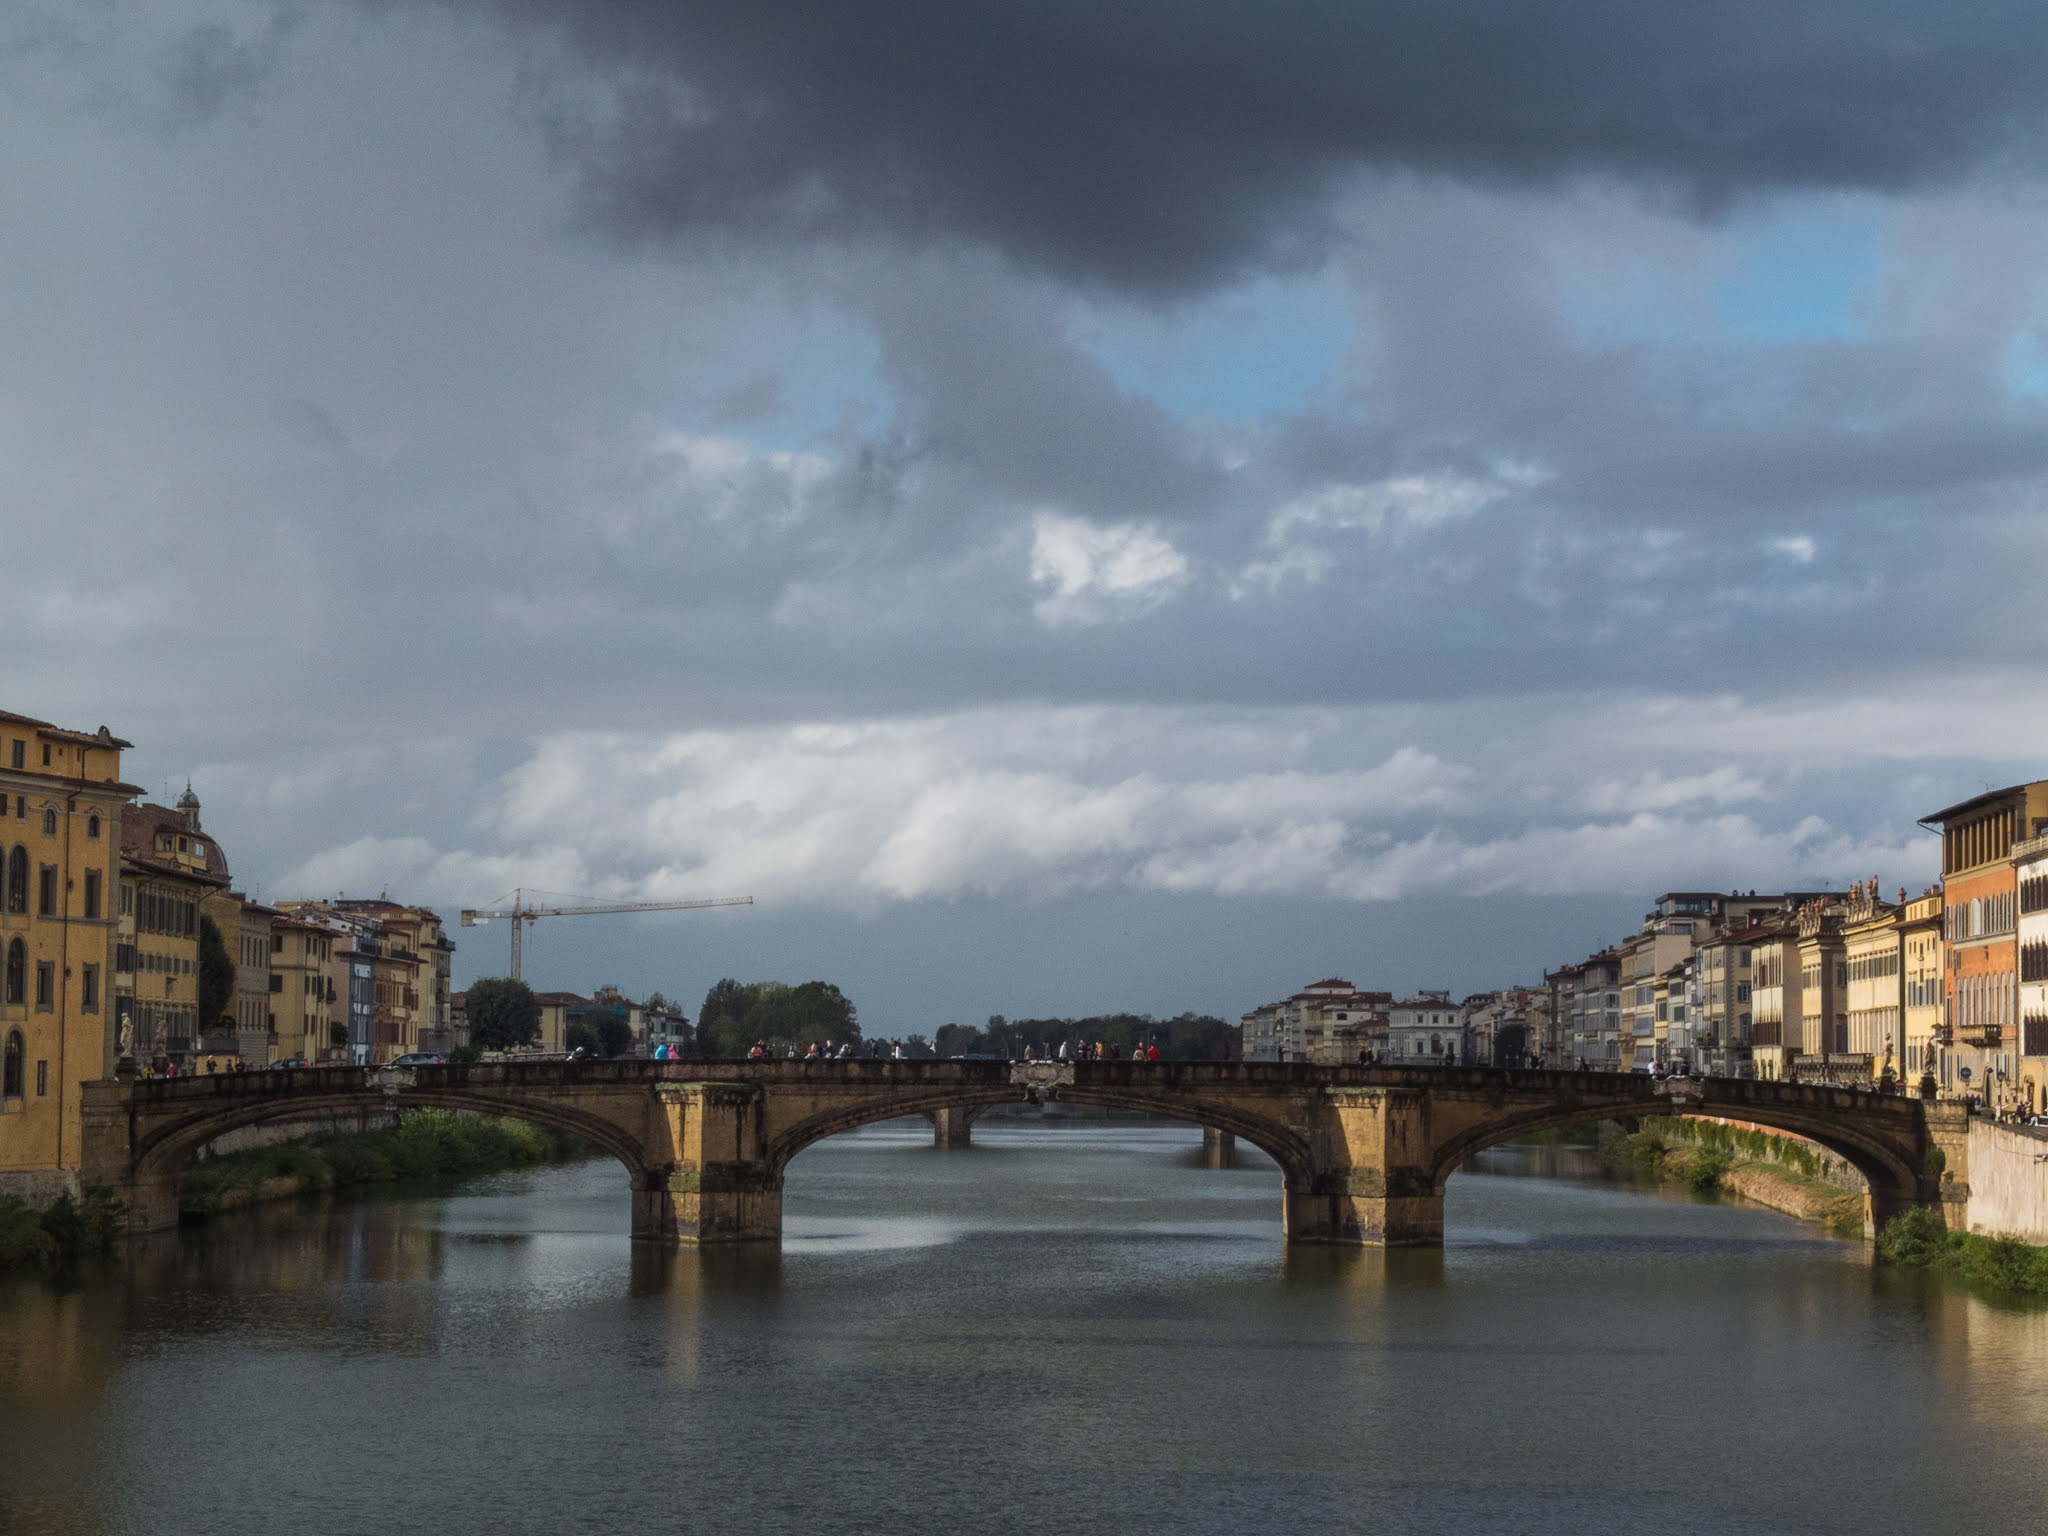 View of the Ponte Santa Trinita over the Arno River in Florence.